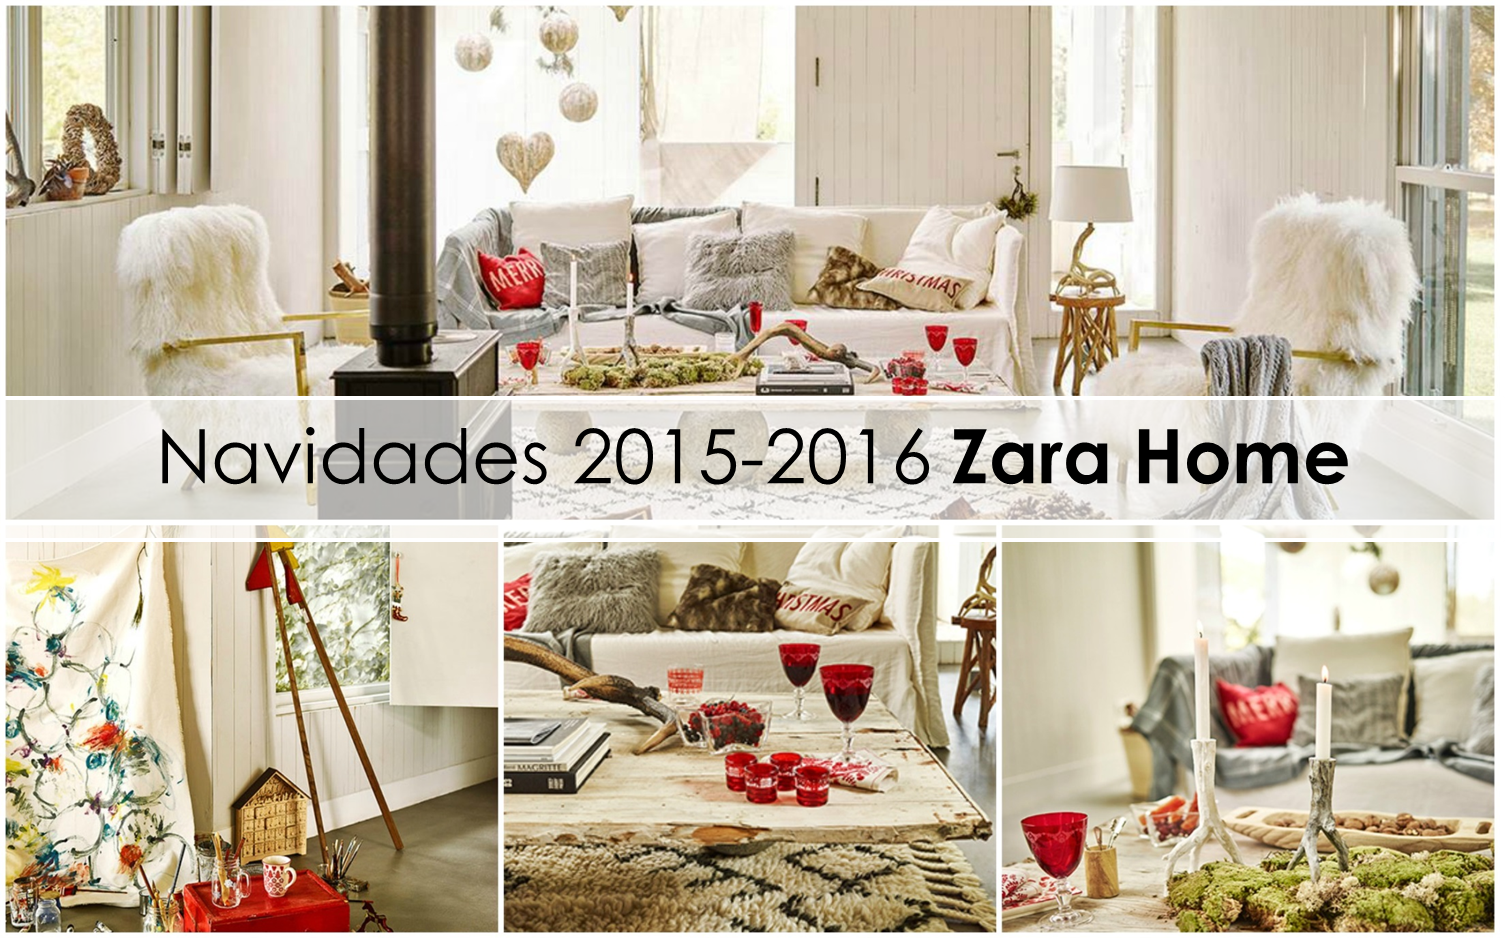 Decoraci n f cil navidad 2015 2016 de zara home for Decoracion hogar tendencias 2015